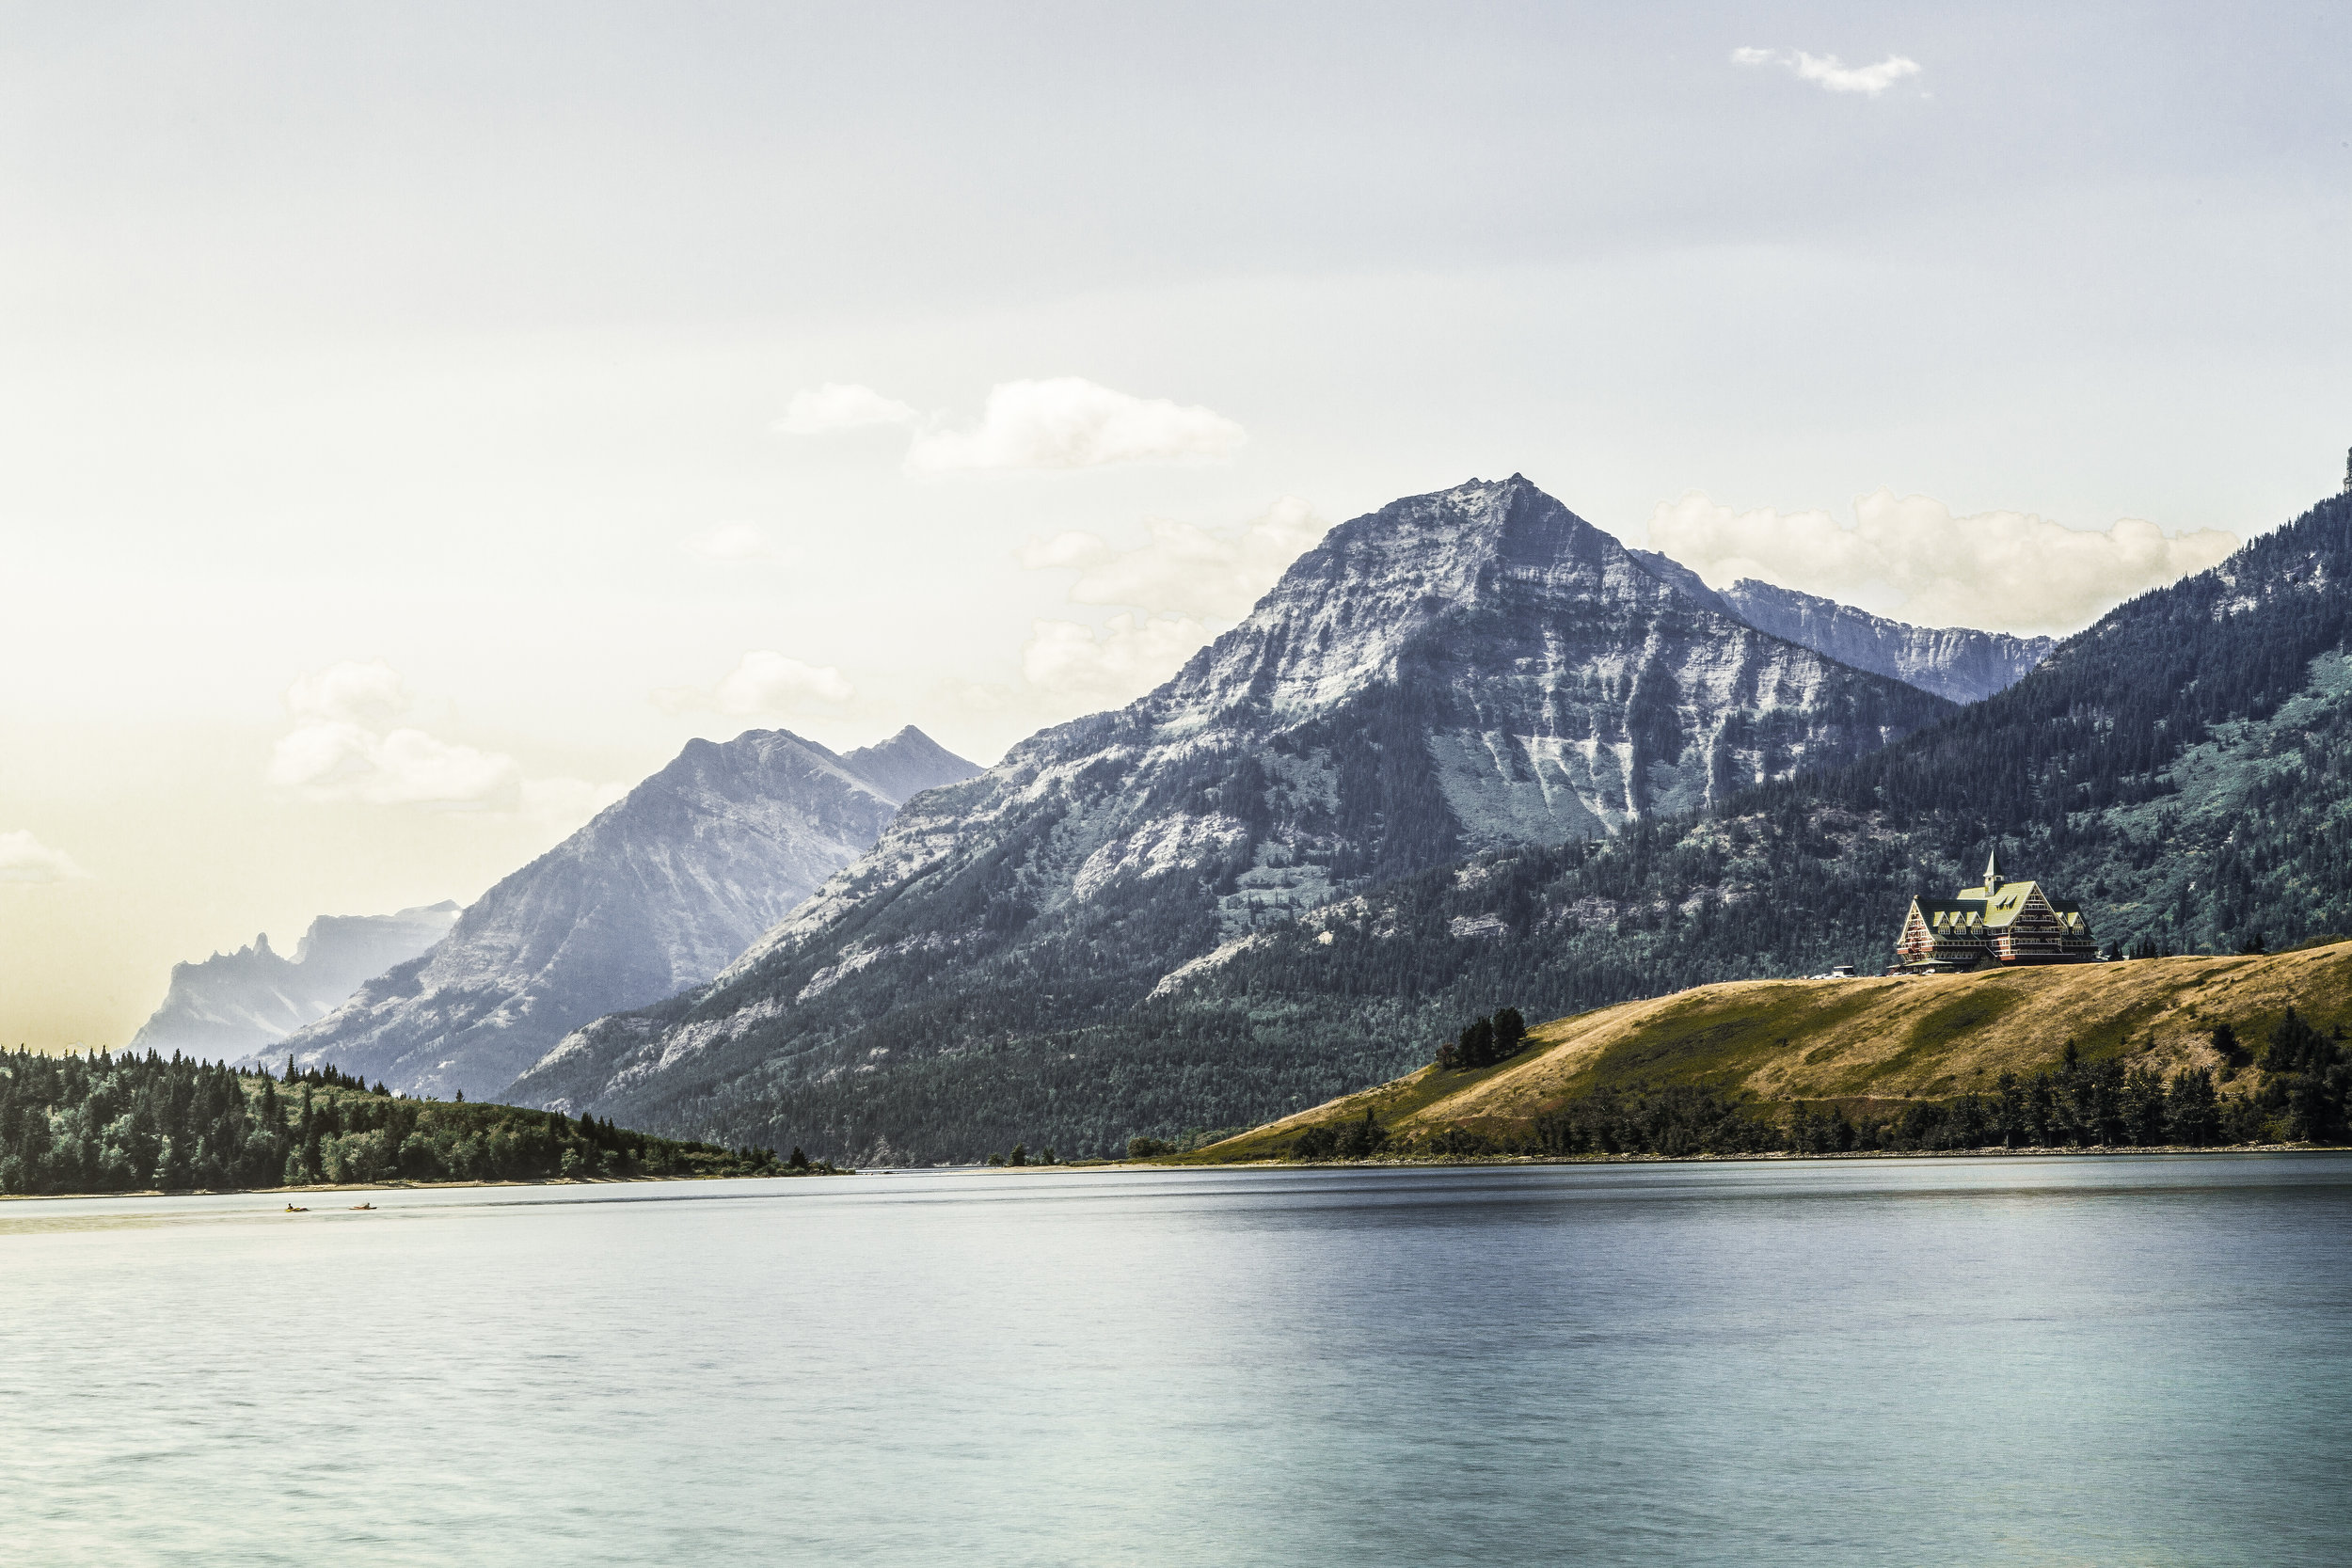 Calgary-kristina-cajipe-photographer-commercial-professional-best-corporate-waterton-photo-canada-rockies-pictures-building-travel (1).jpg